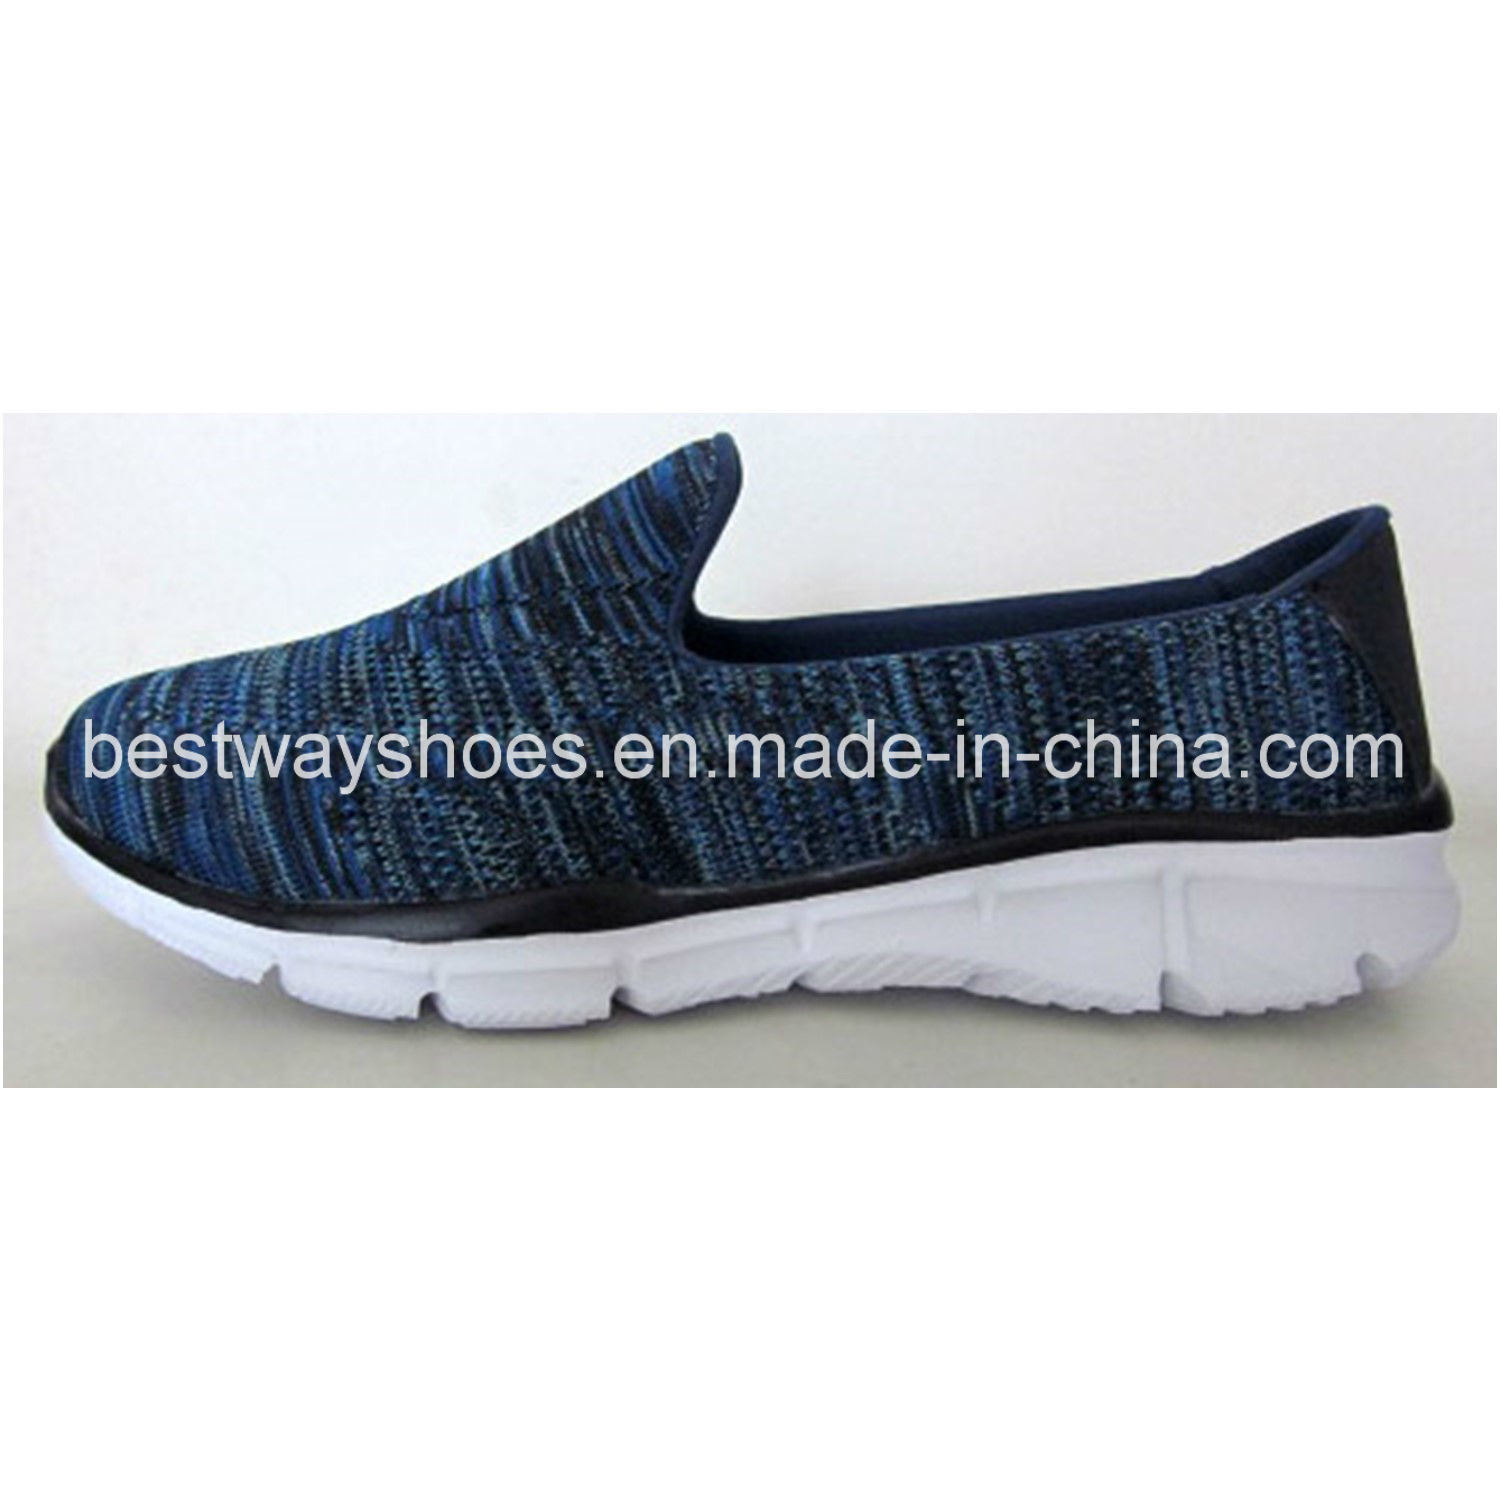 Flyknit Shoes Slip-on Shoes for Ladies